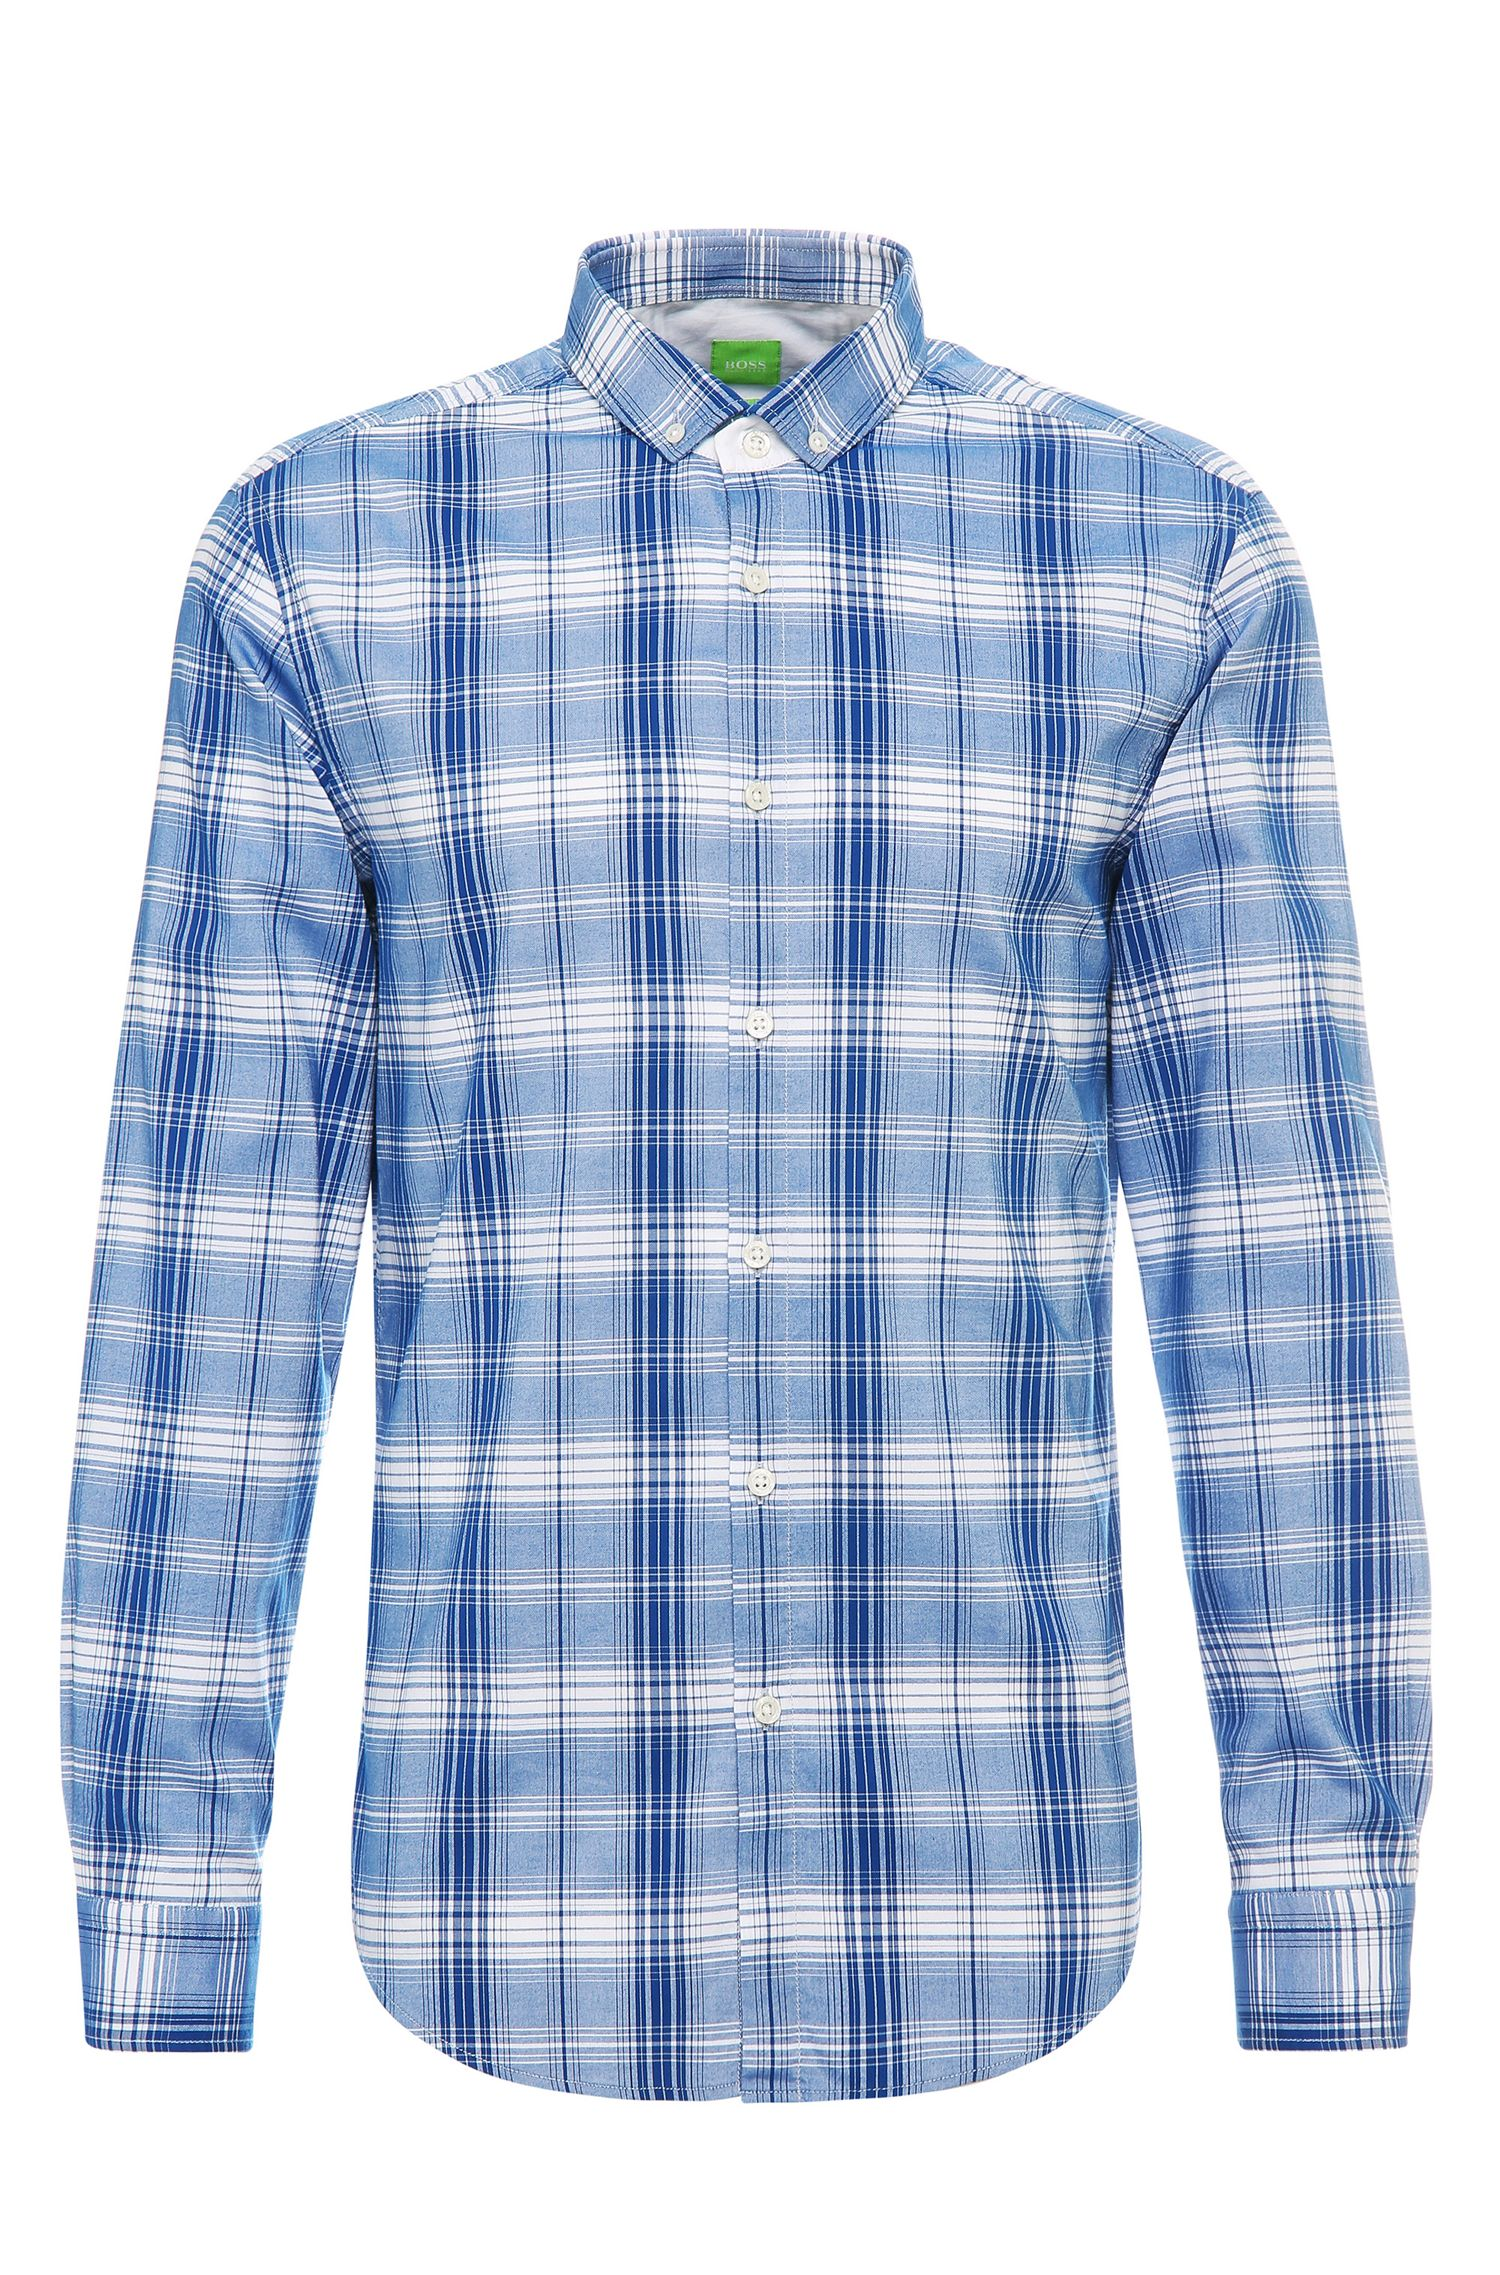 'C-Bilia' | Slim Fit, Plaid Cotton Button Down Shirt